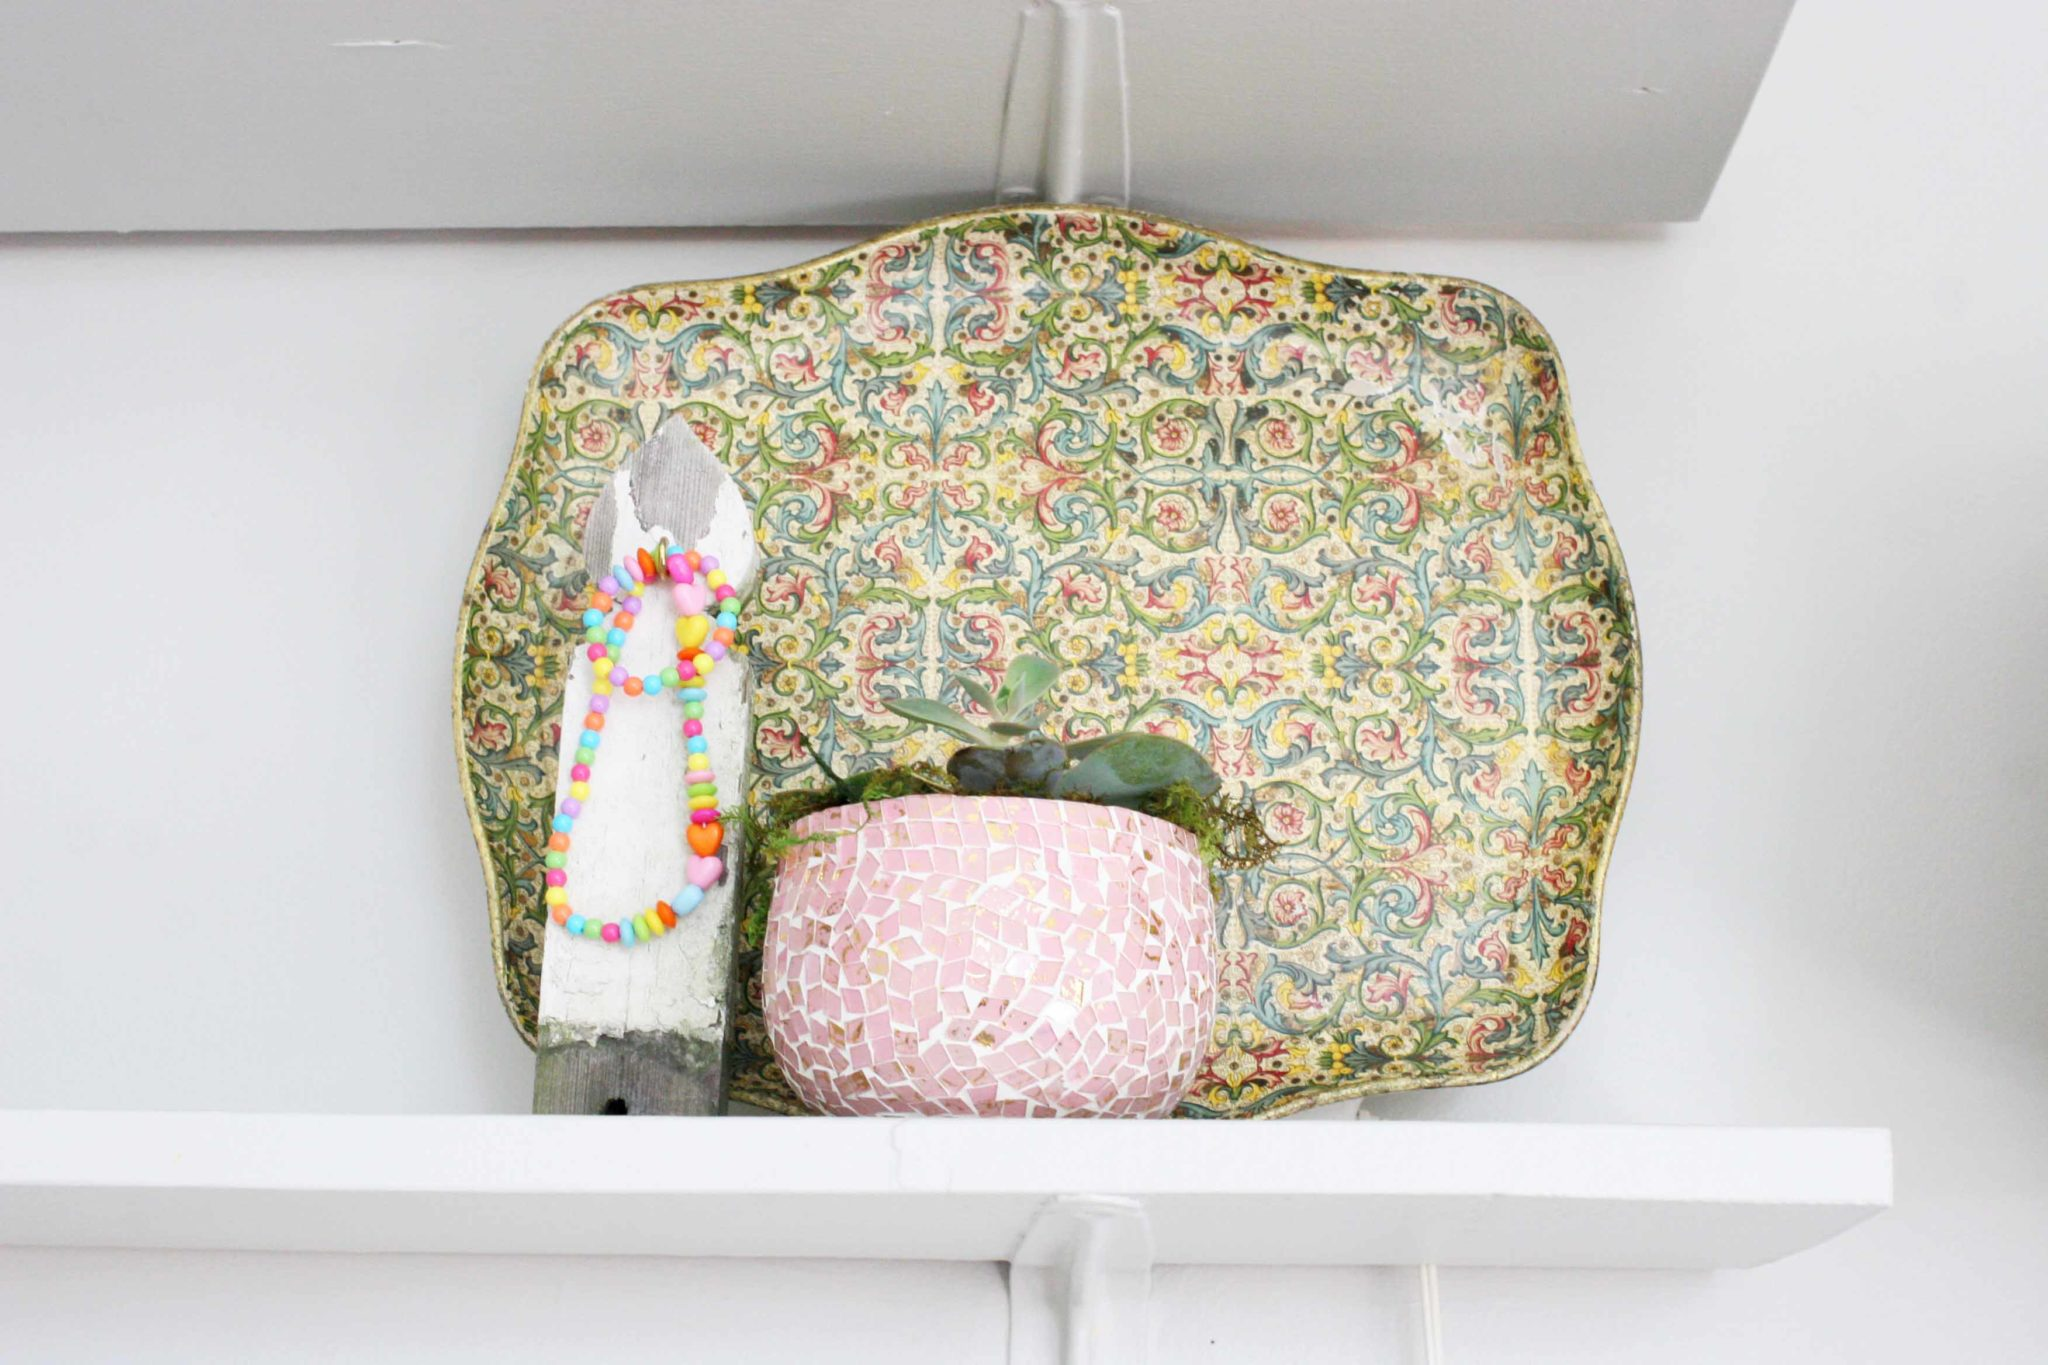 Diy Crafts For Baby Room: 10 Quick And Easy DIY Projects